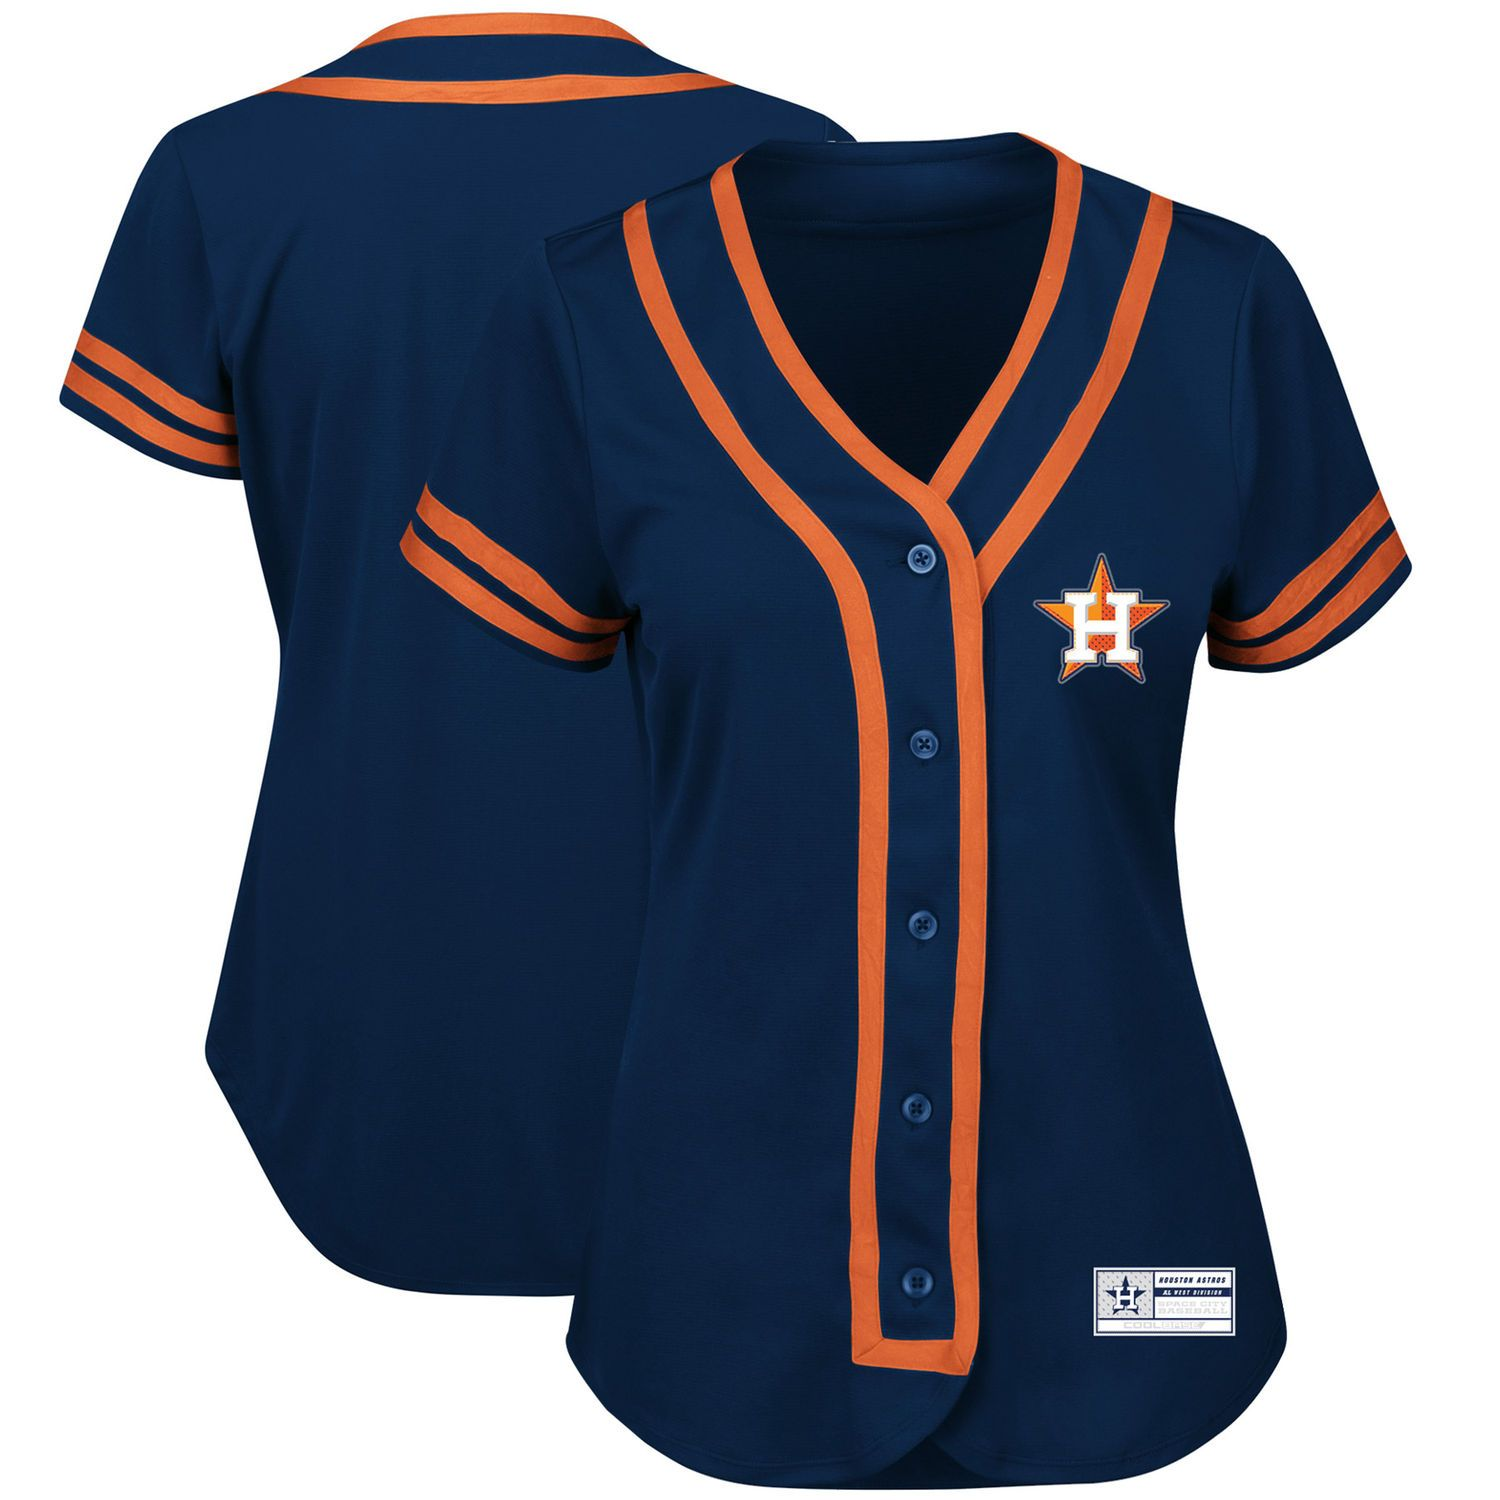 ff909fa35 Houston Astros Majestic Women s Absolute Victory Fashion Team Jersey -  Navy Orange